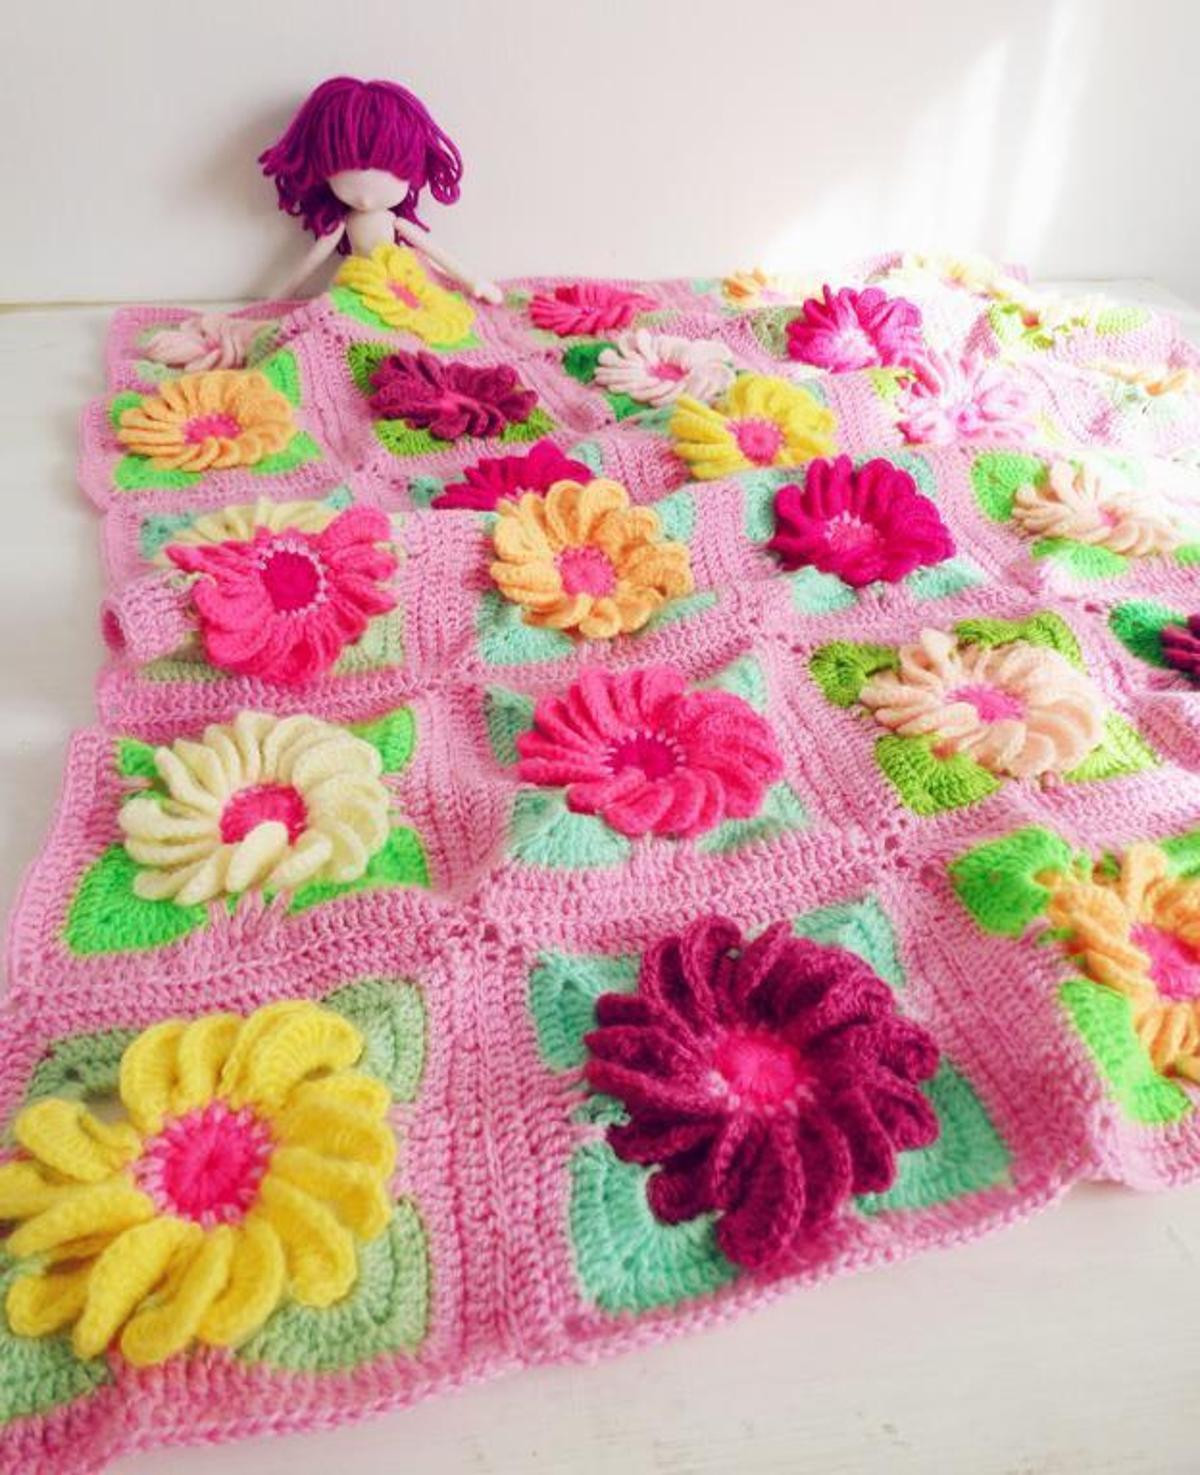 New 10 Flower Granny Square Crochet Patterns to Stitch Granny Square Baby Blanket Pattern Of Innovative 45 Images Granny Square Baby Blanket Pattern